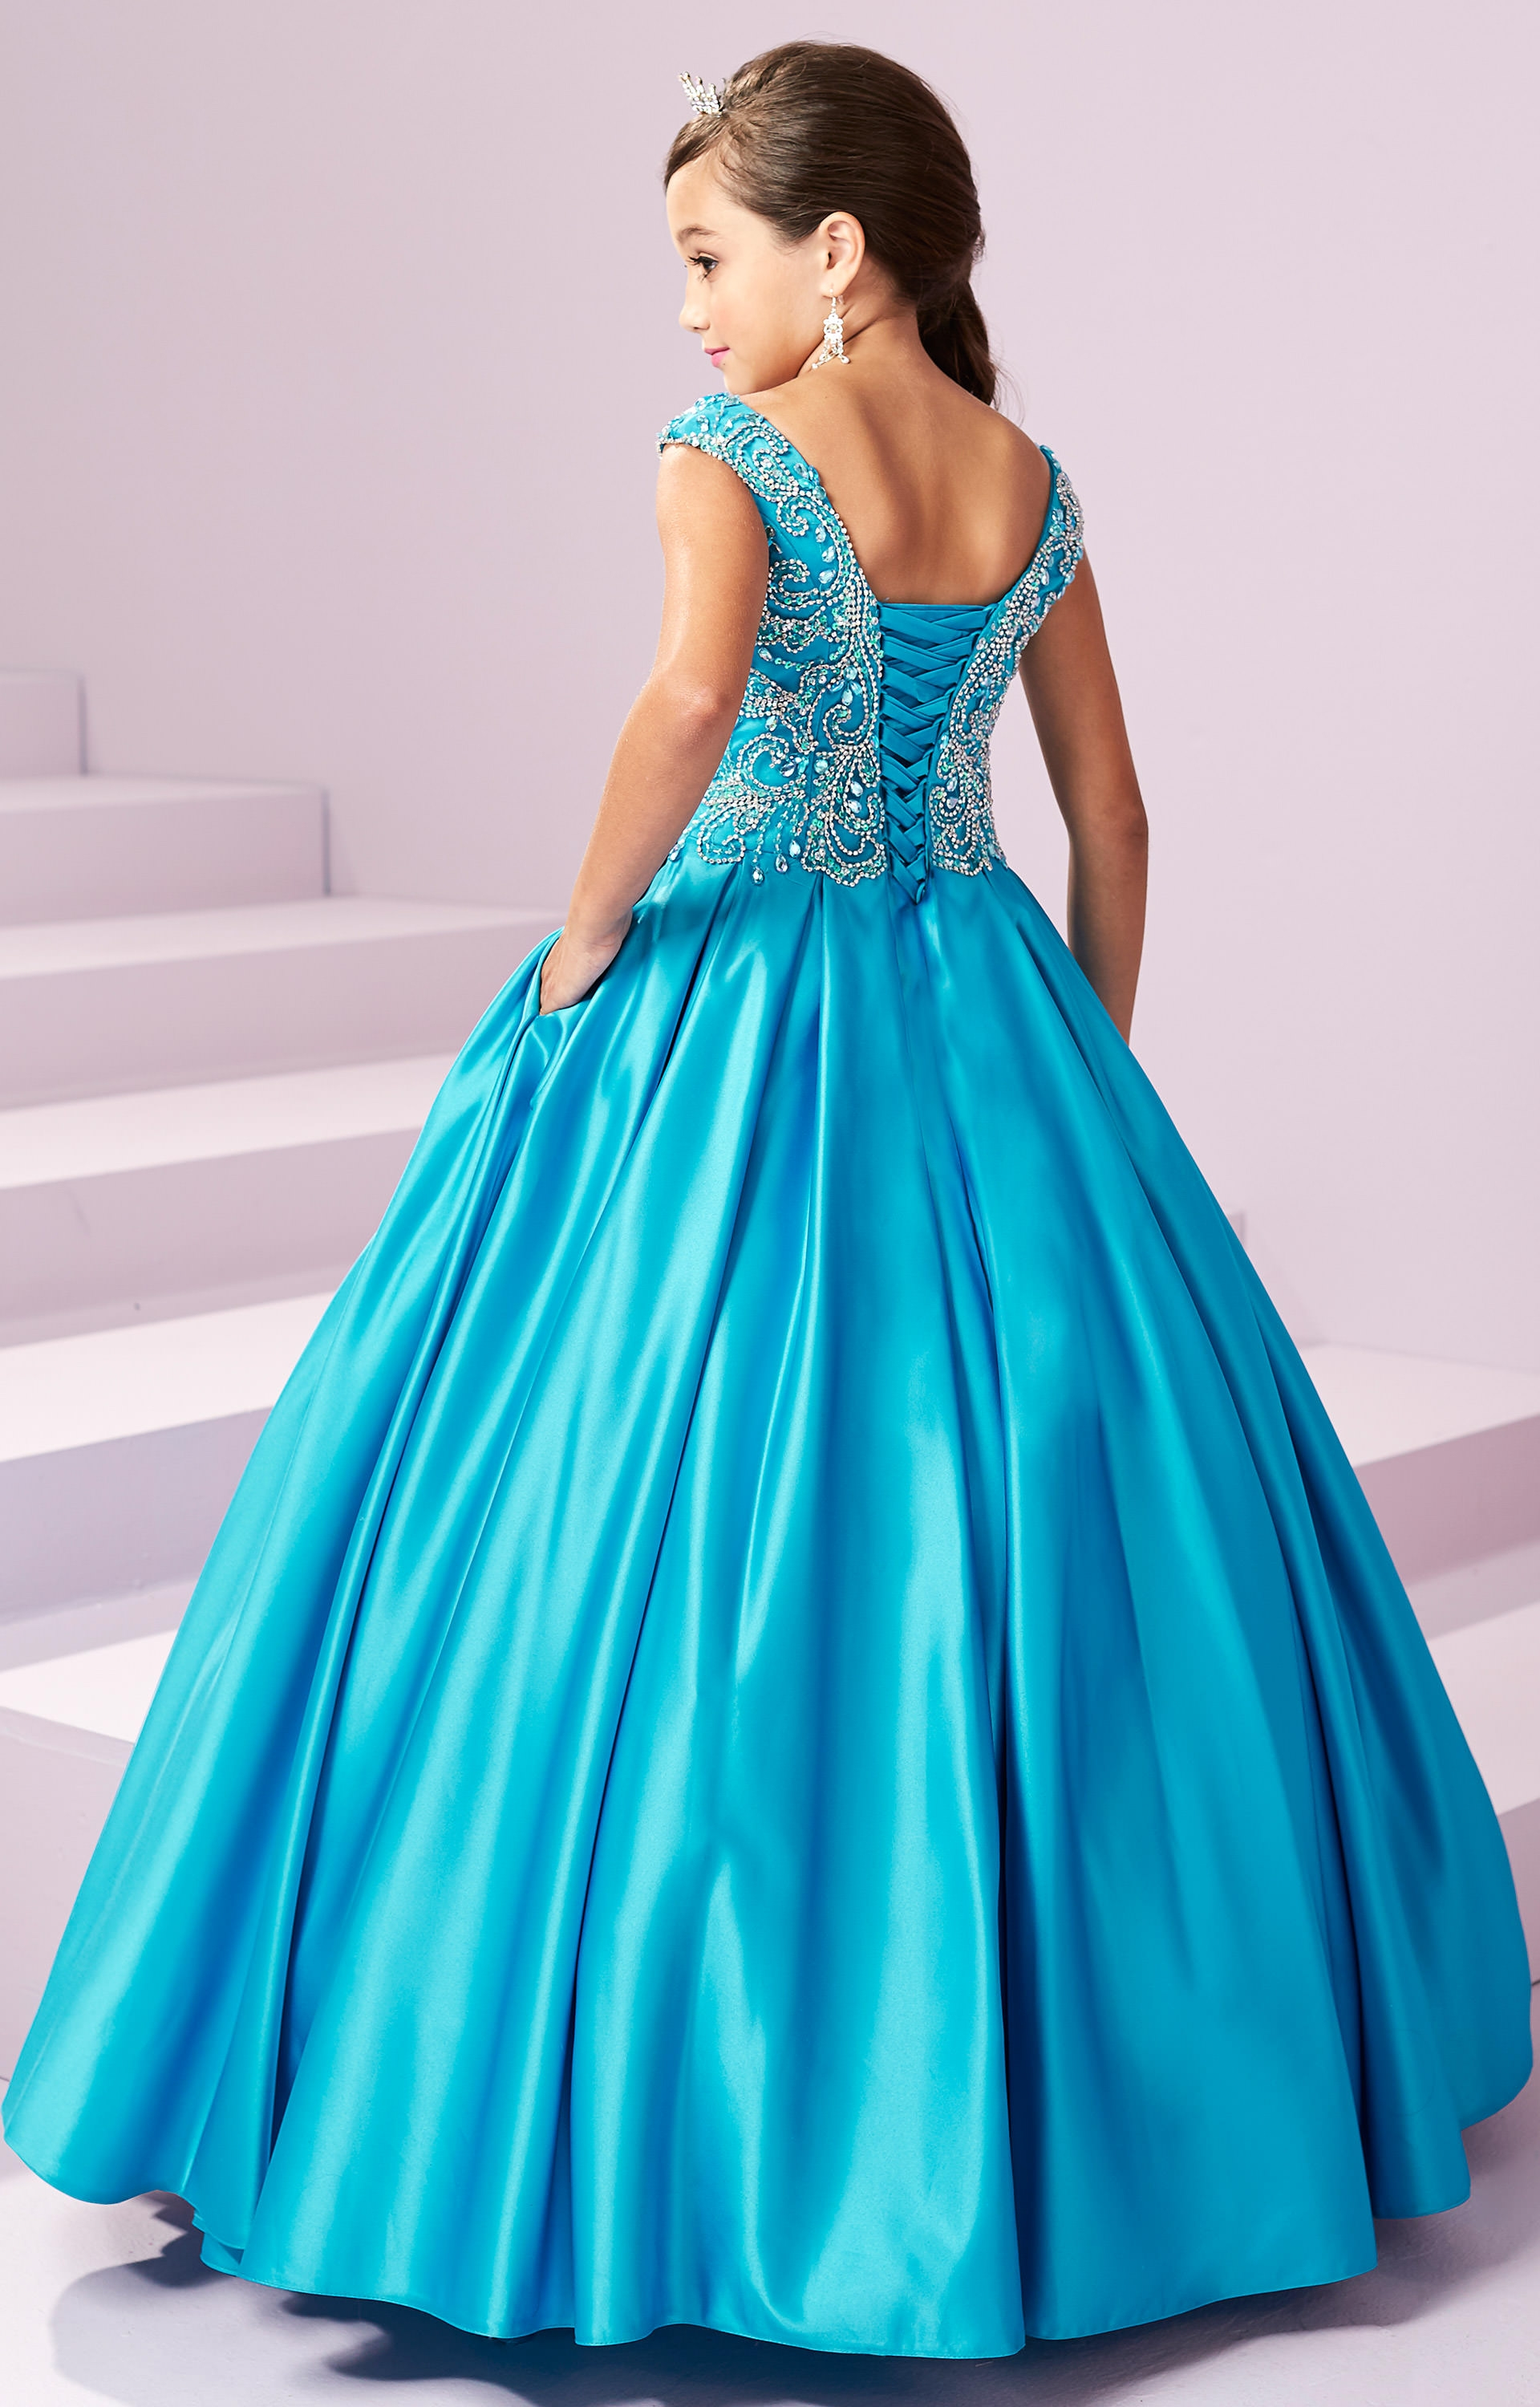 Tiffany Princess 13490 - Corset Back Satin Ball Gown with a ...